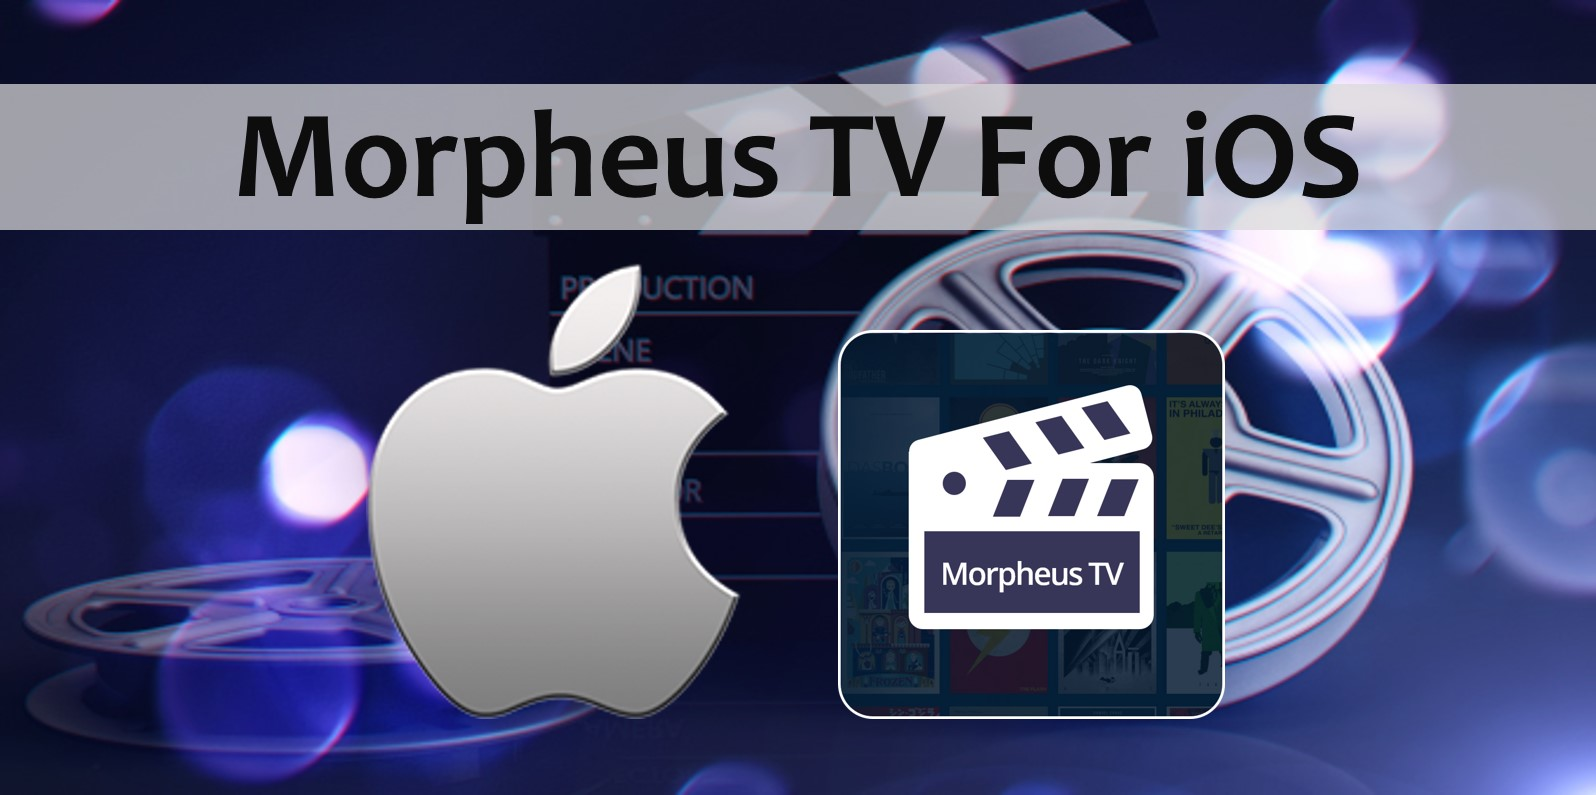 morpheus tv for ios